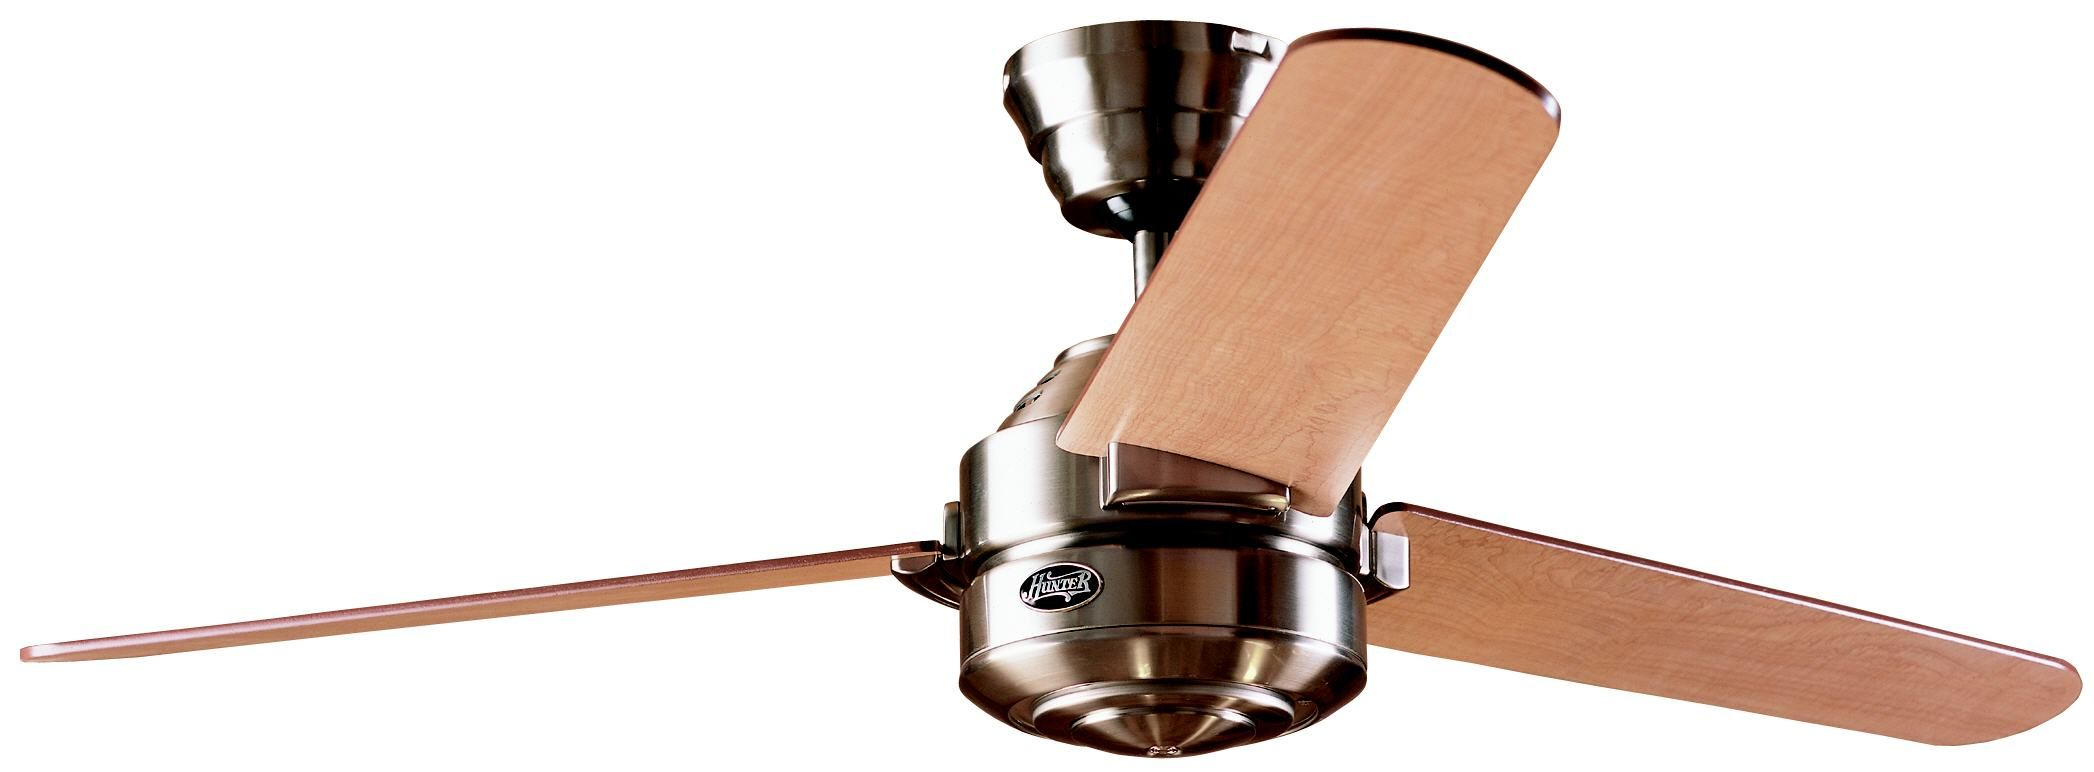 Conservatory Ceiling Fans Selecting And Buying The Right Fan Hunter